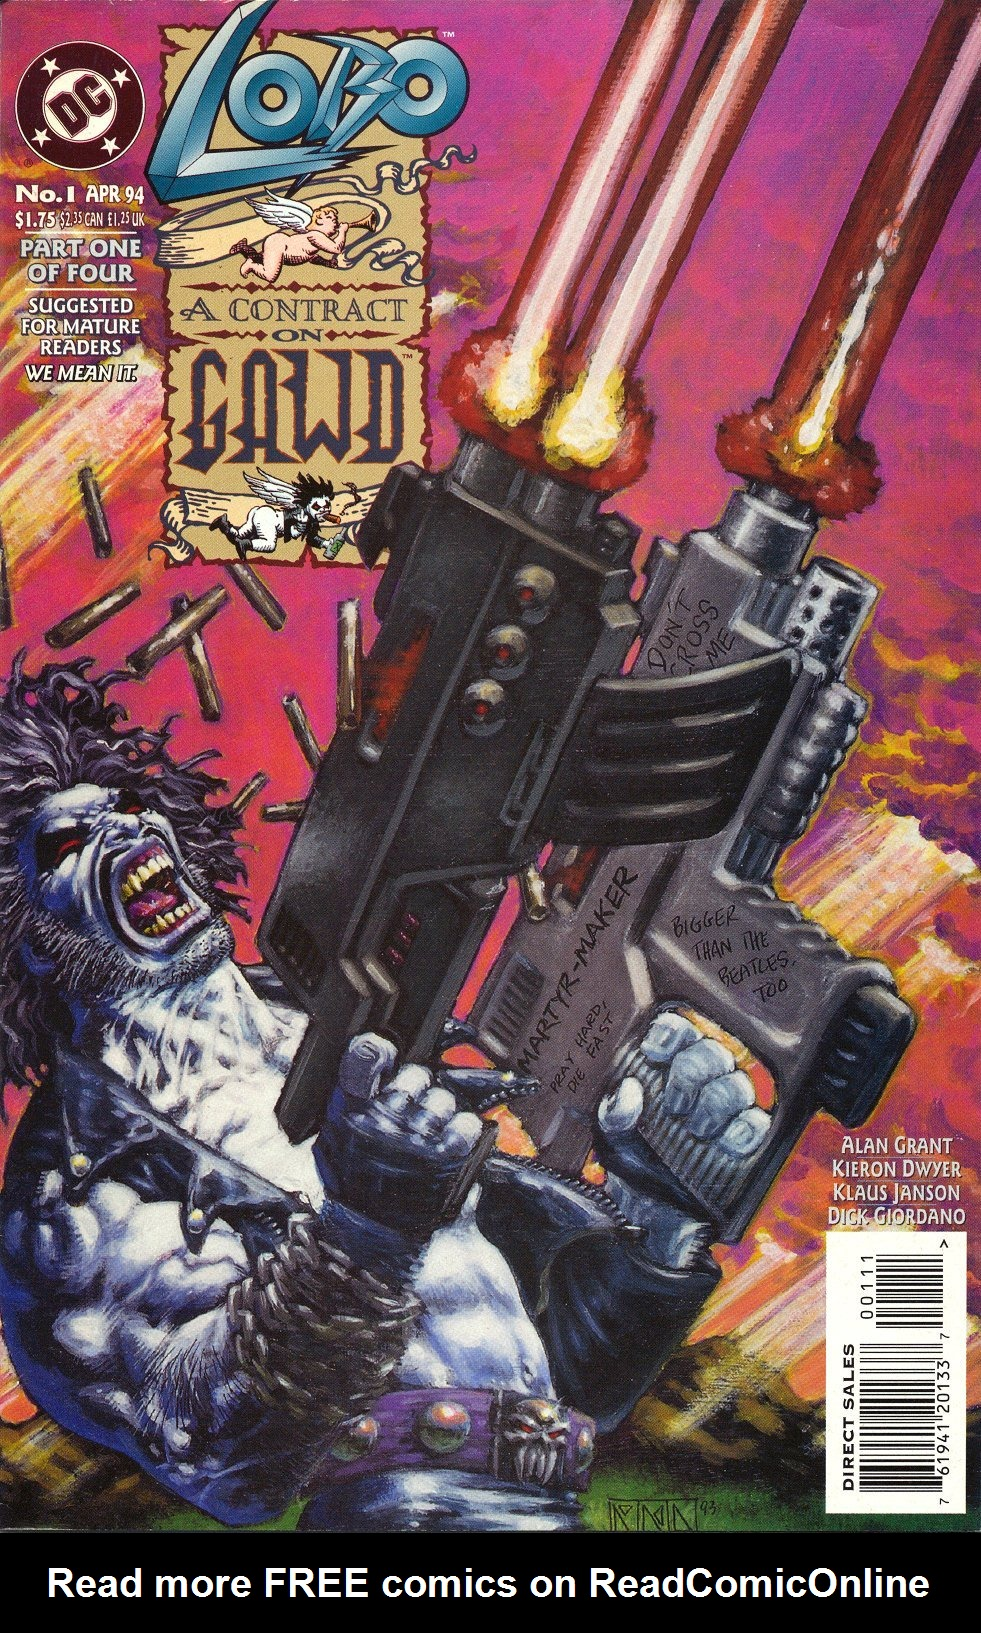 Read online Lobo: A Contract on Gawd comic -  Issue #1 - 1